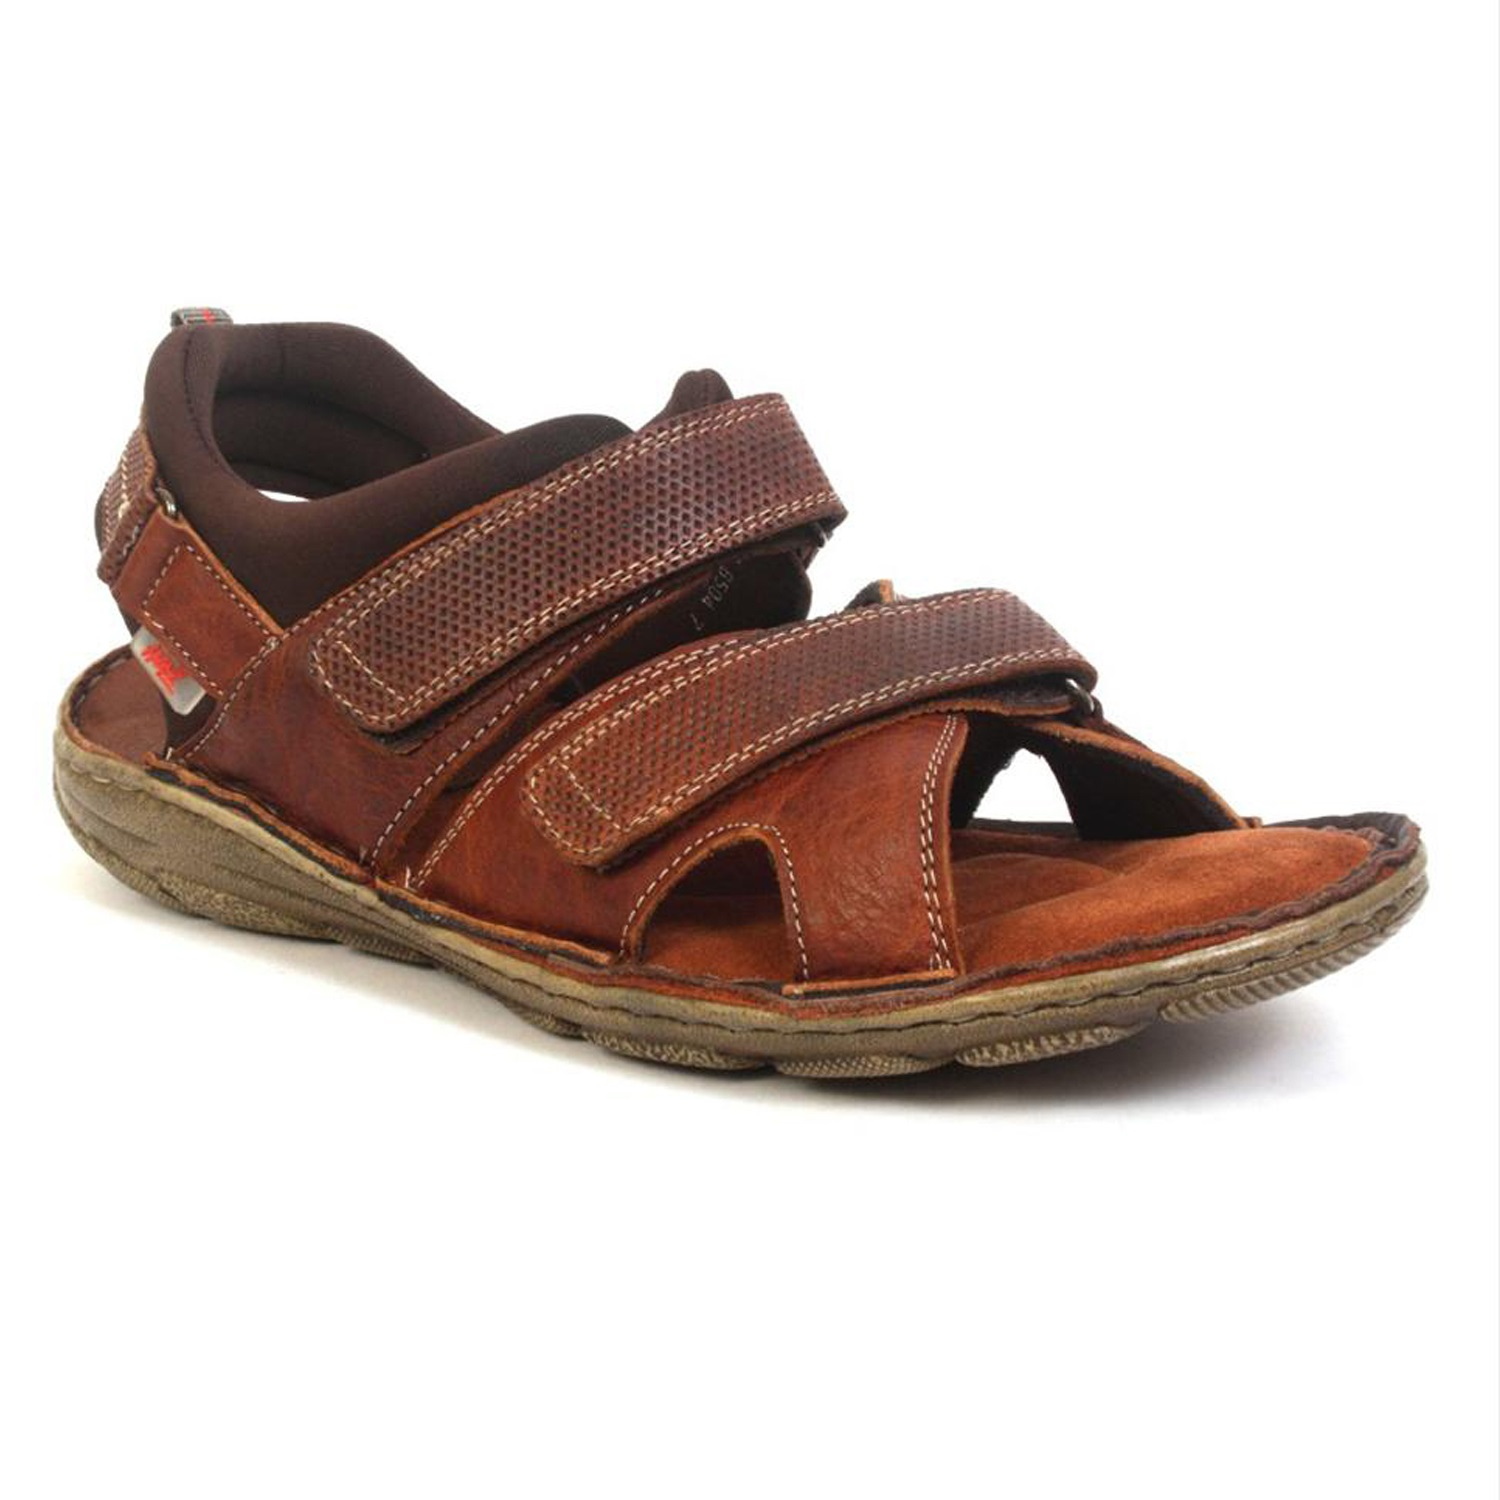 Hitz   Hitz Brown Casual Genuine Leather Sandal with Velcro Fastening